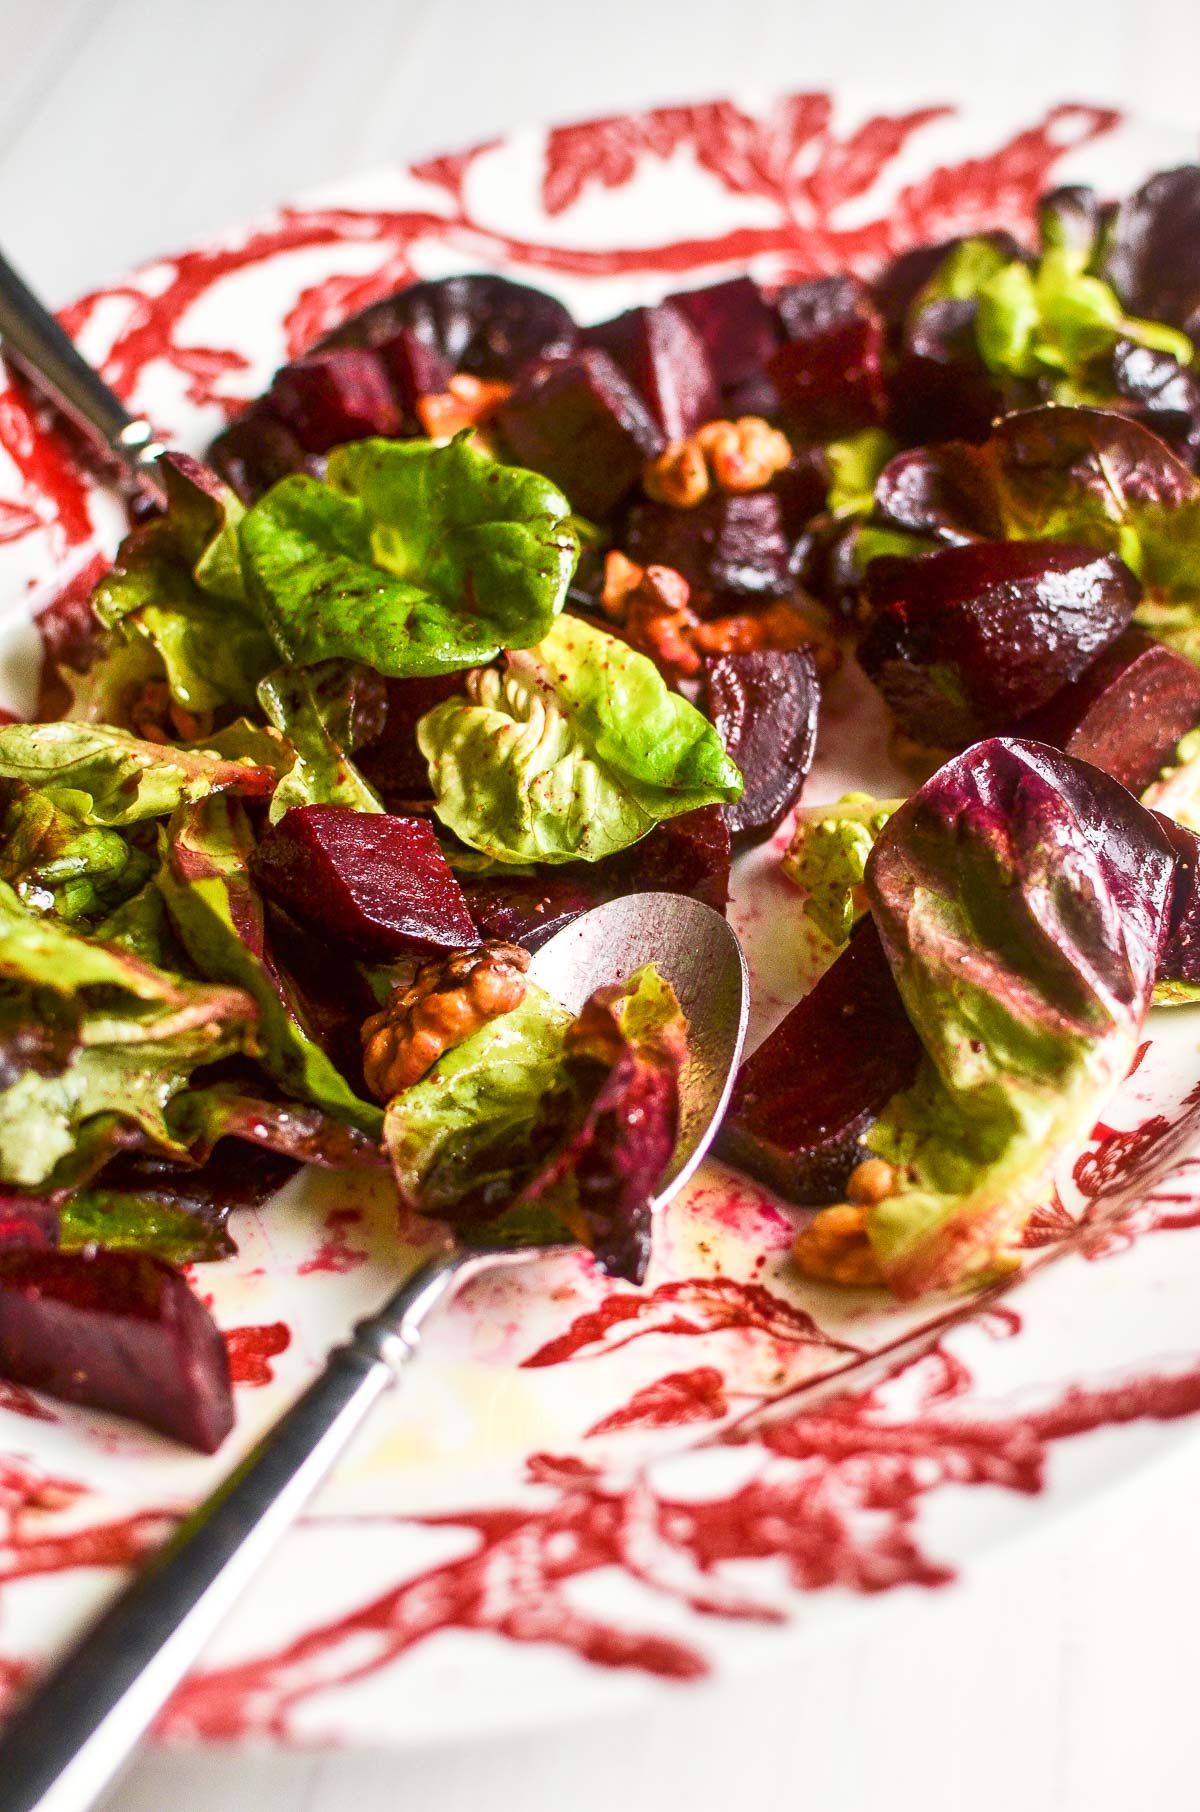 A red patterned platter of roasted beet and brie salad with two serving spoons.